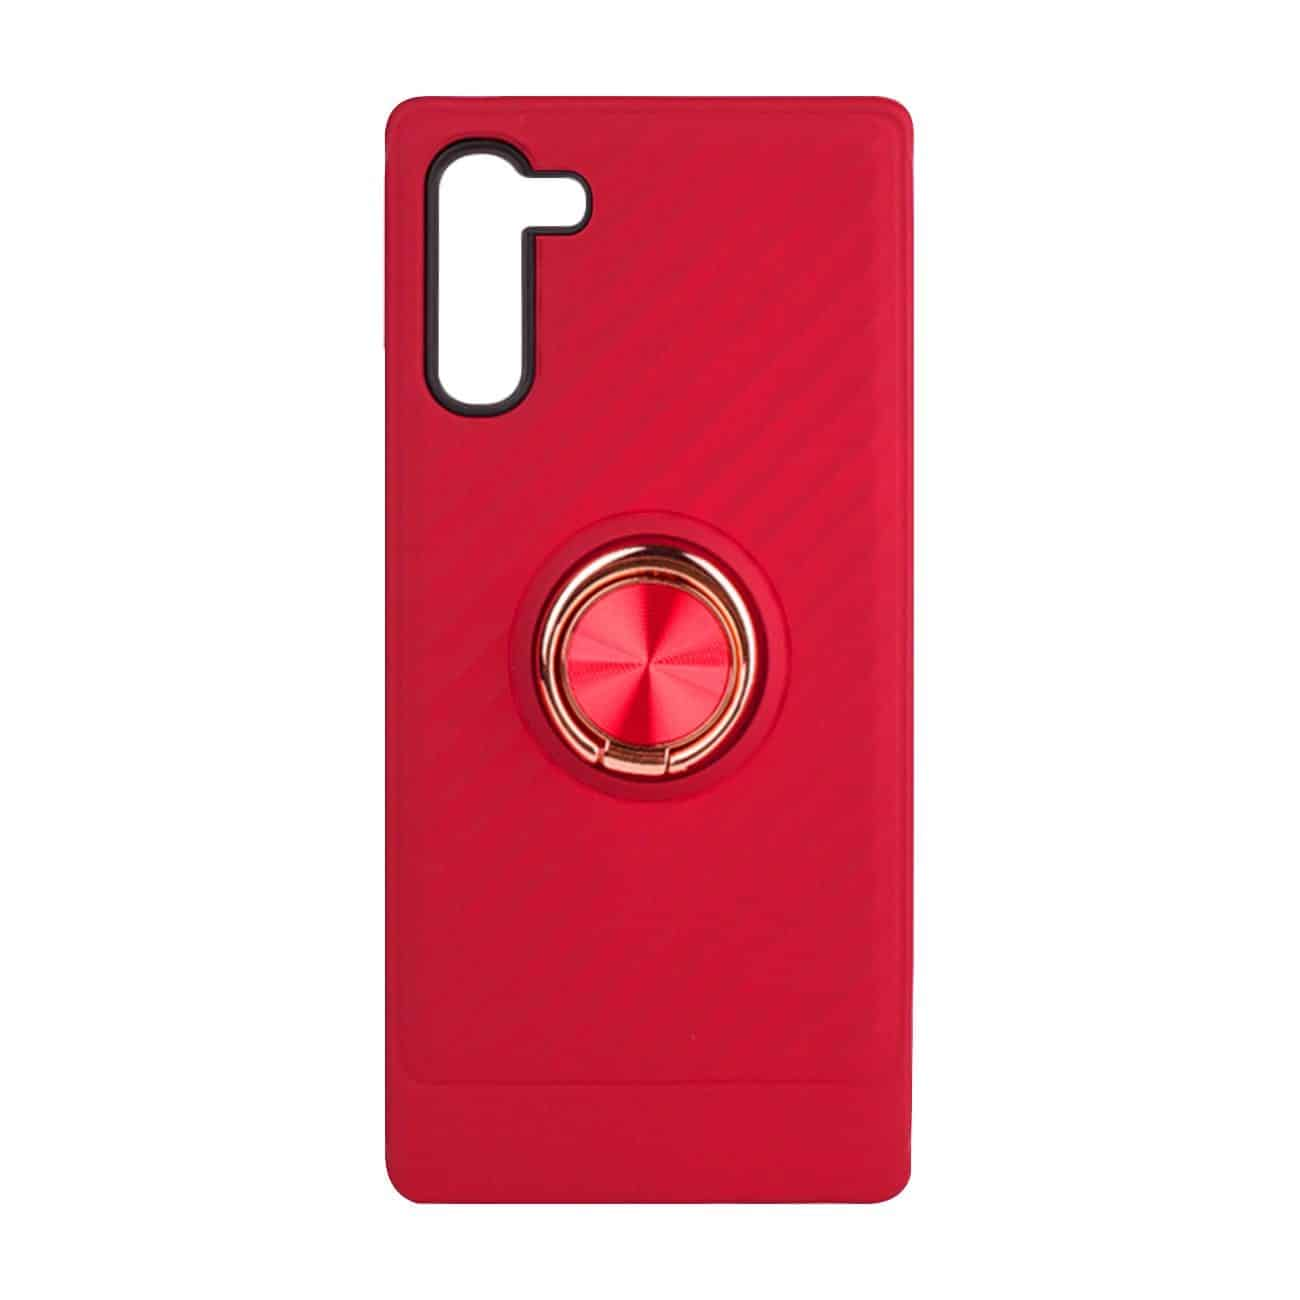 SAMSUNG GALAXY NOTE 10 Case with Ring Holder InRed